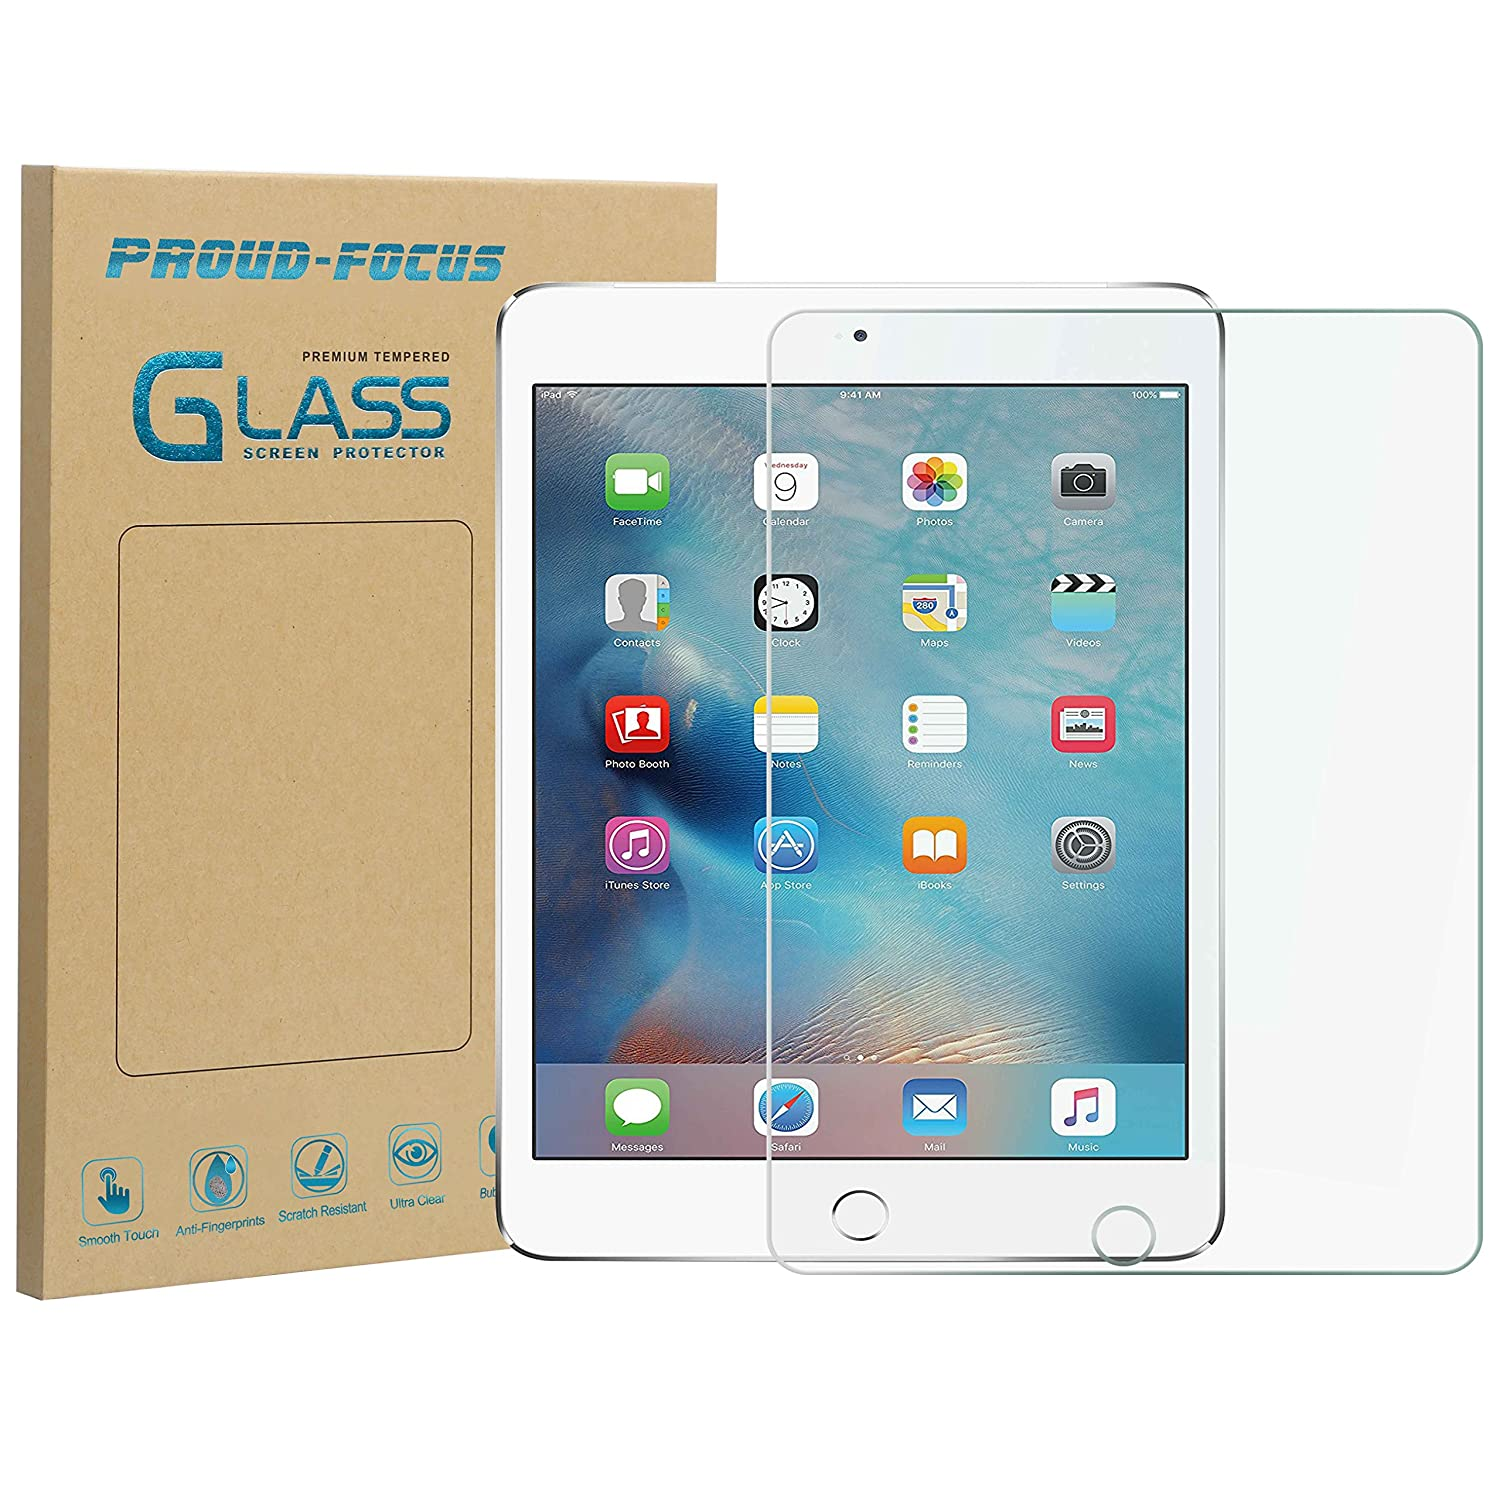 iPad Mini 4 Screen Protector, Premium Tempered Glass Screen Protector for Apple iPad Mini 4 with [Case Friendly] [2.5D Rounded Edge] [10H Hardness] [Easy Installation] Proud Focus Screen Protector